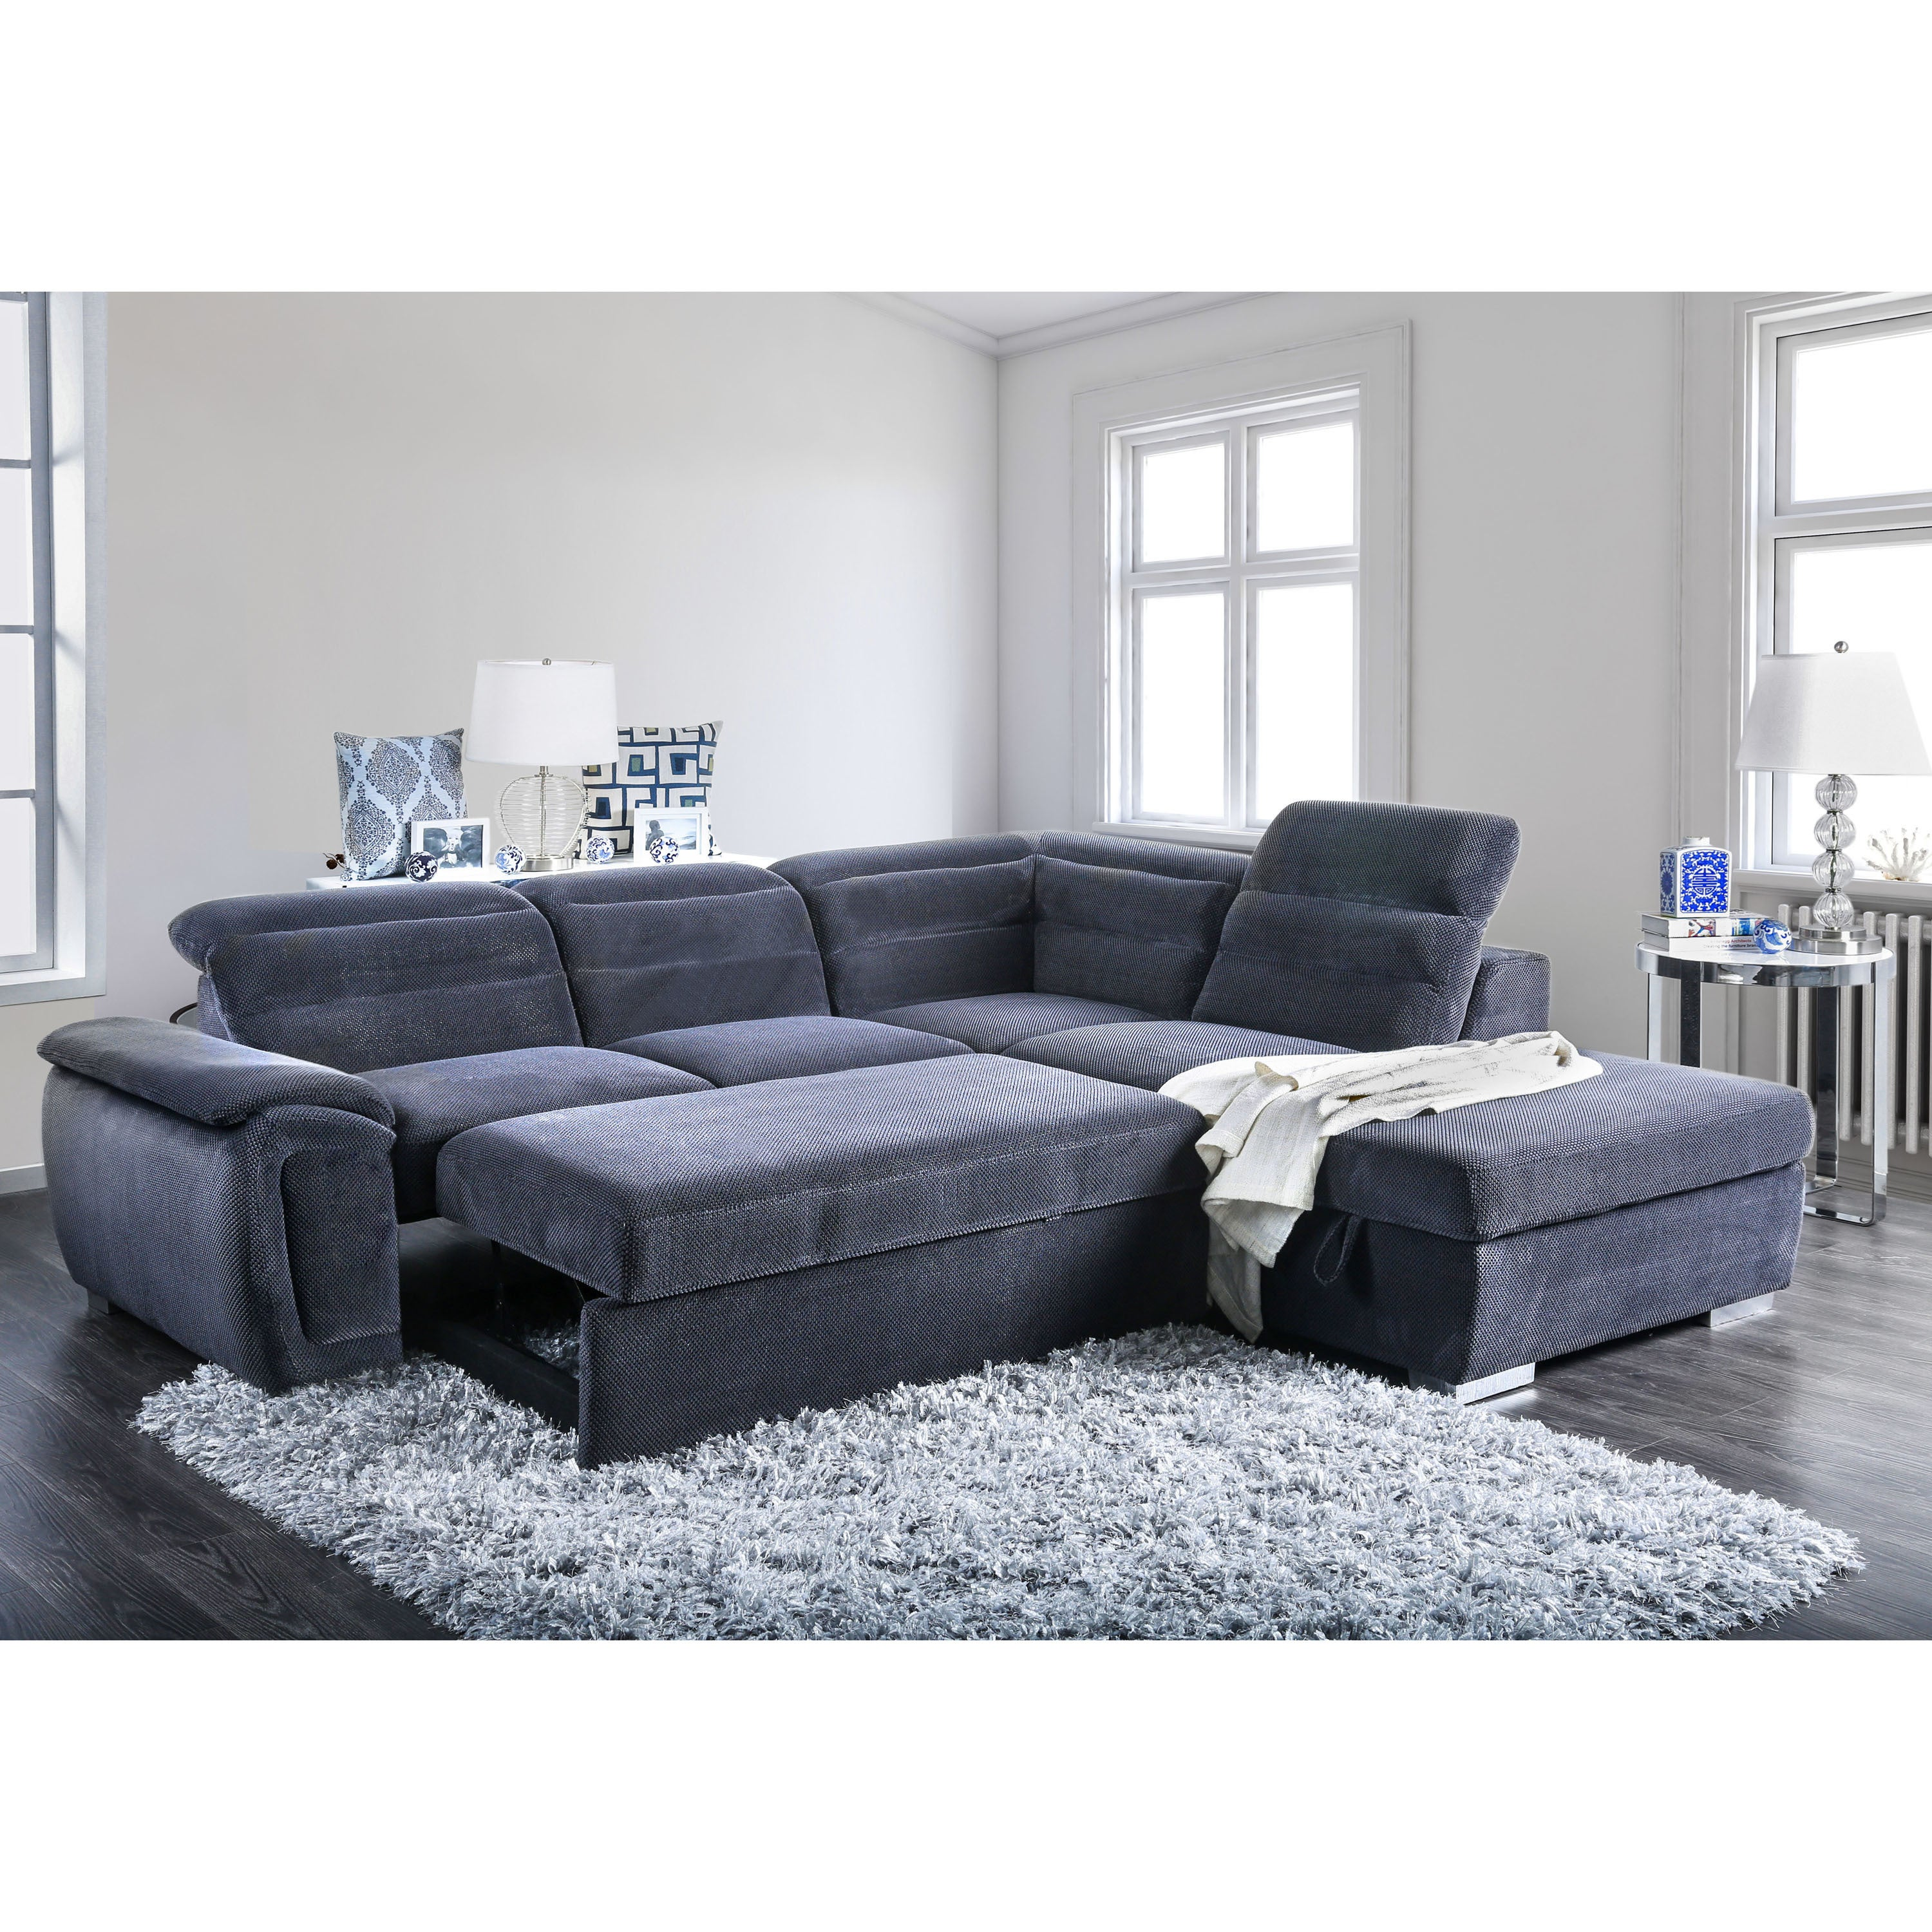 Furniture of america alina contemporary 2 piece chenille convertible sleeper sectional with ottoman